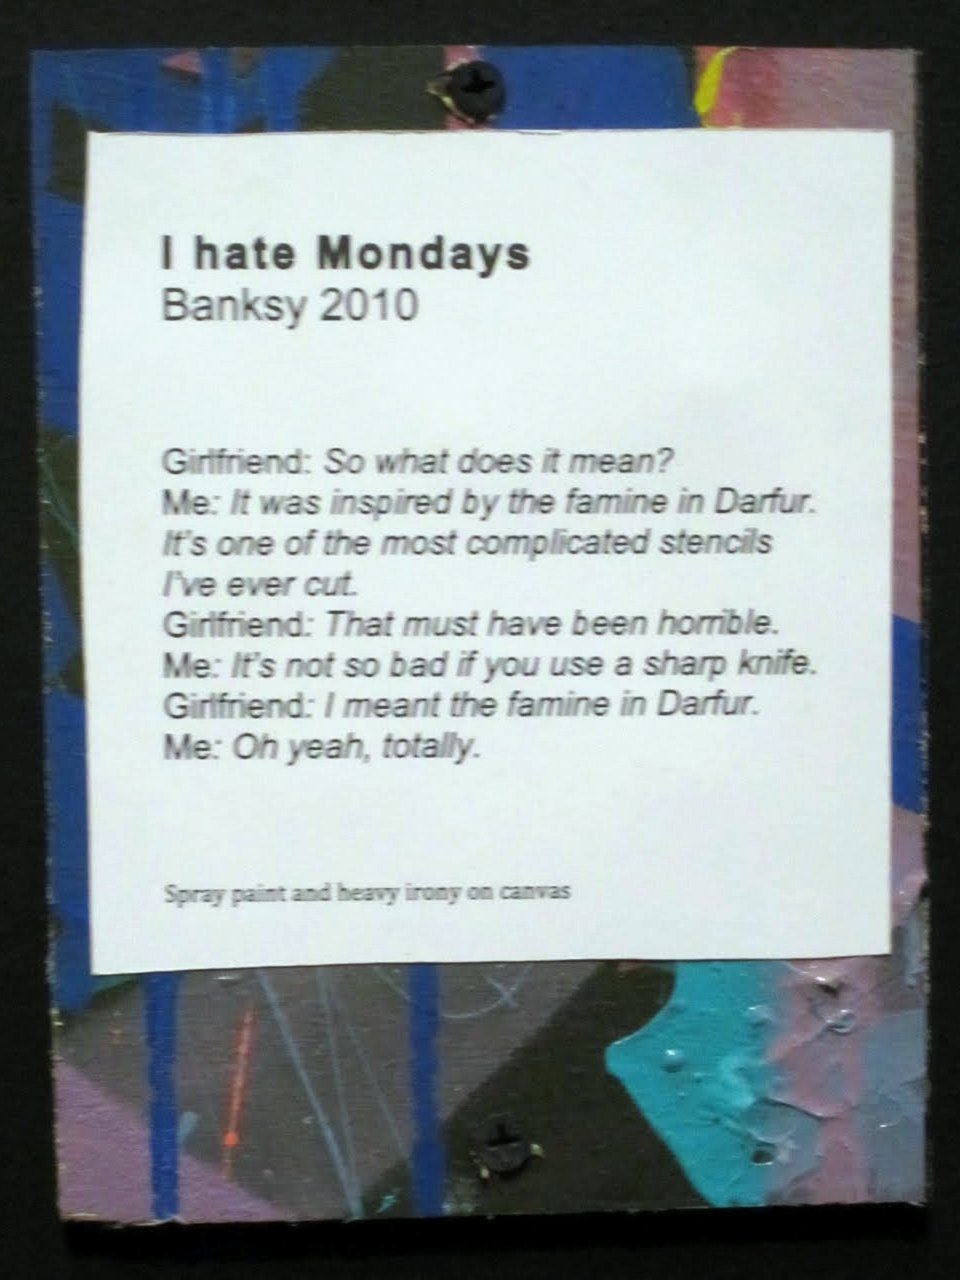 Banksy: I hate Mondays (artists statement)